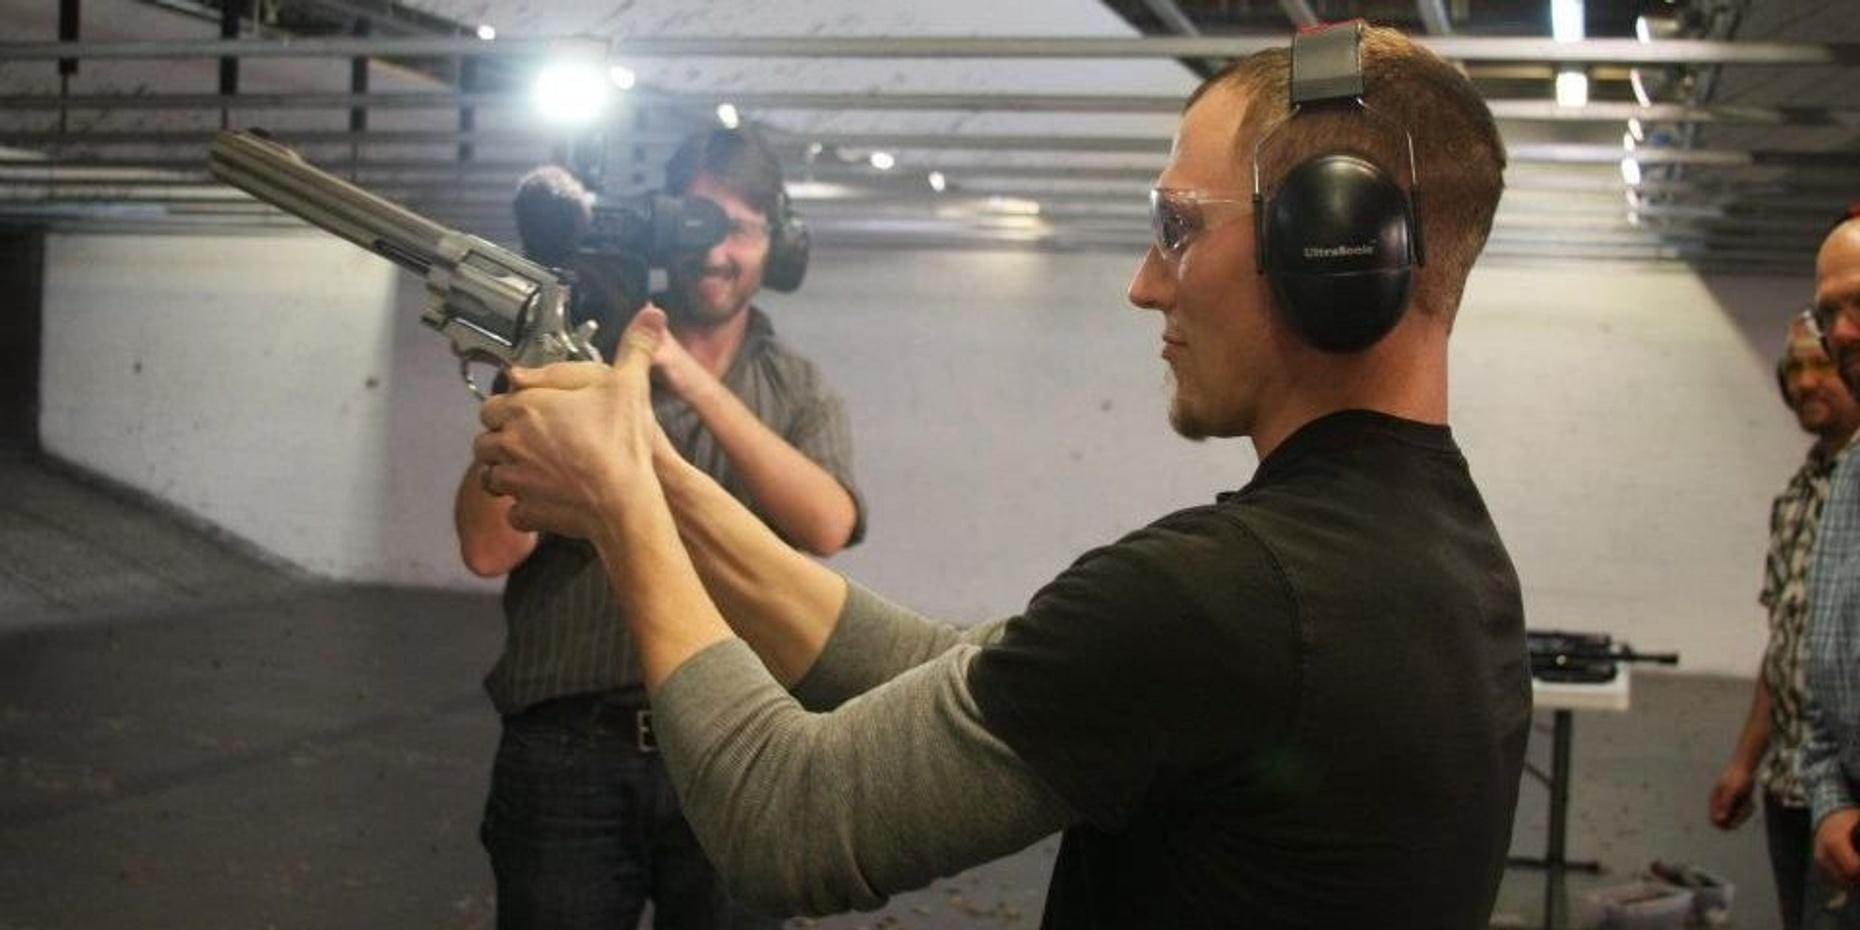 Shooting Practice with Film-Famous Firearms in Las Vegas